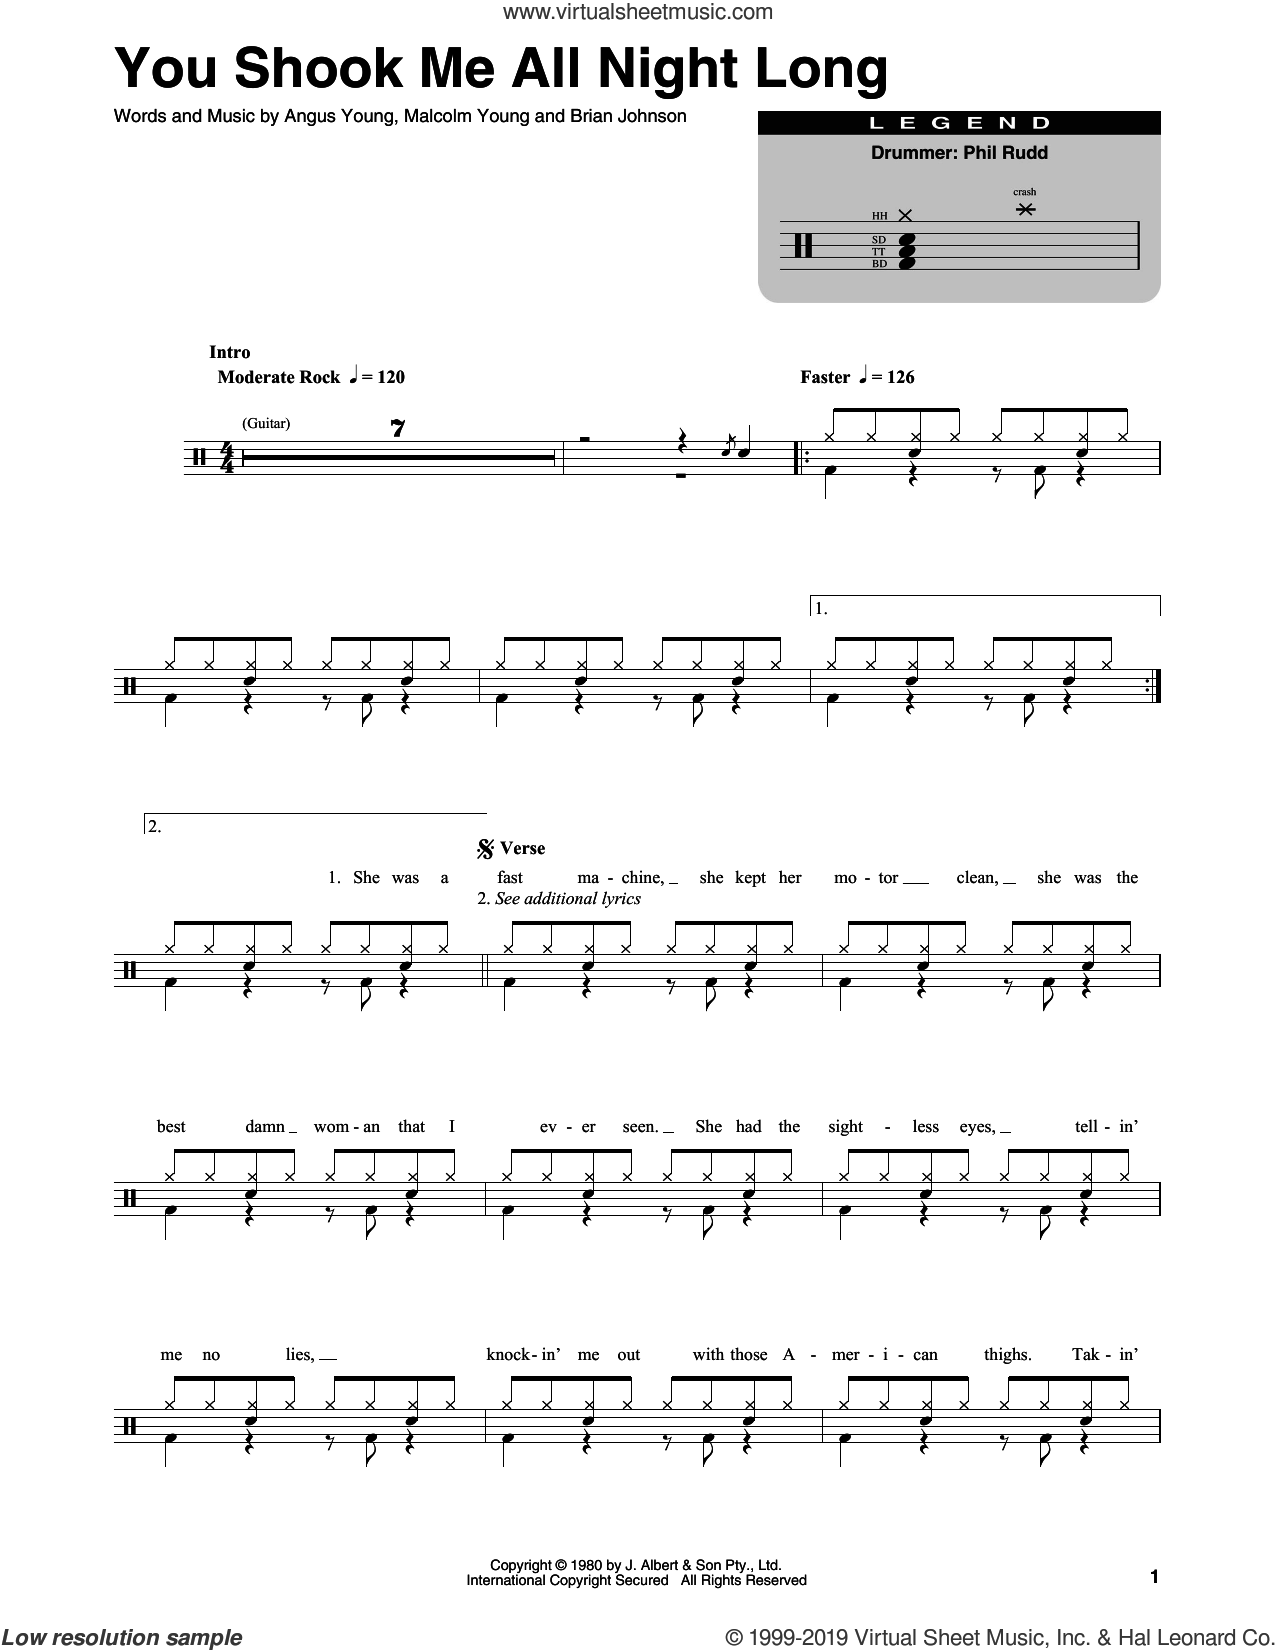 You Shook Me All Night Long sheet music for drums by AC/DC, Angus Young, Brian Johnson and Malcolm Young, intermediate skill level